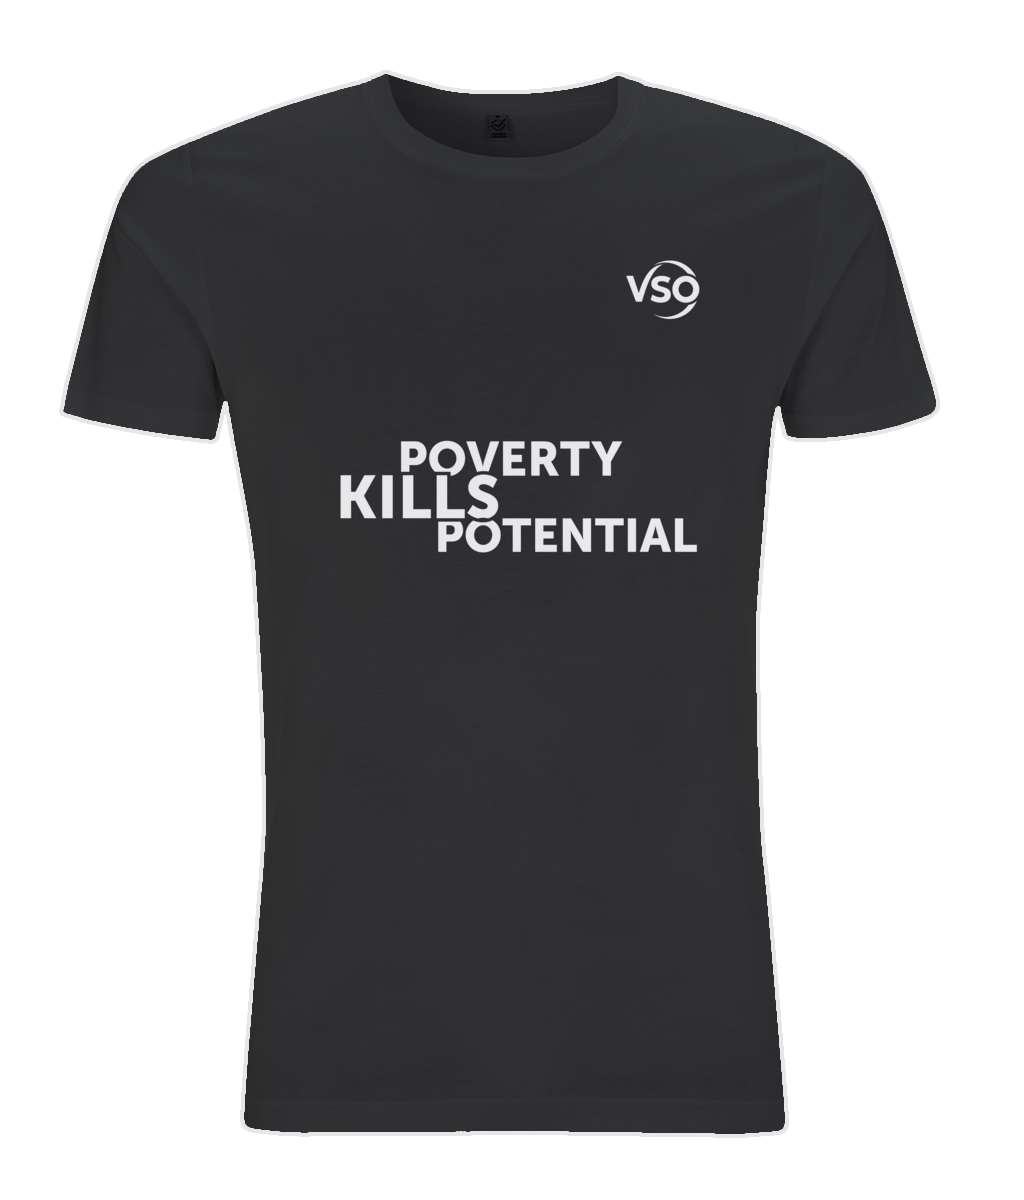 Poverty Kills Potential Slim Fit Jersey Men's T-shirt (white logo)